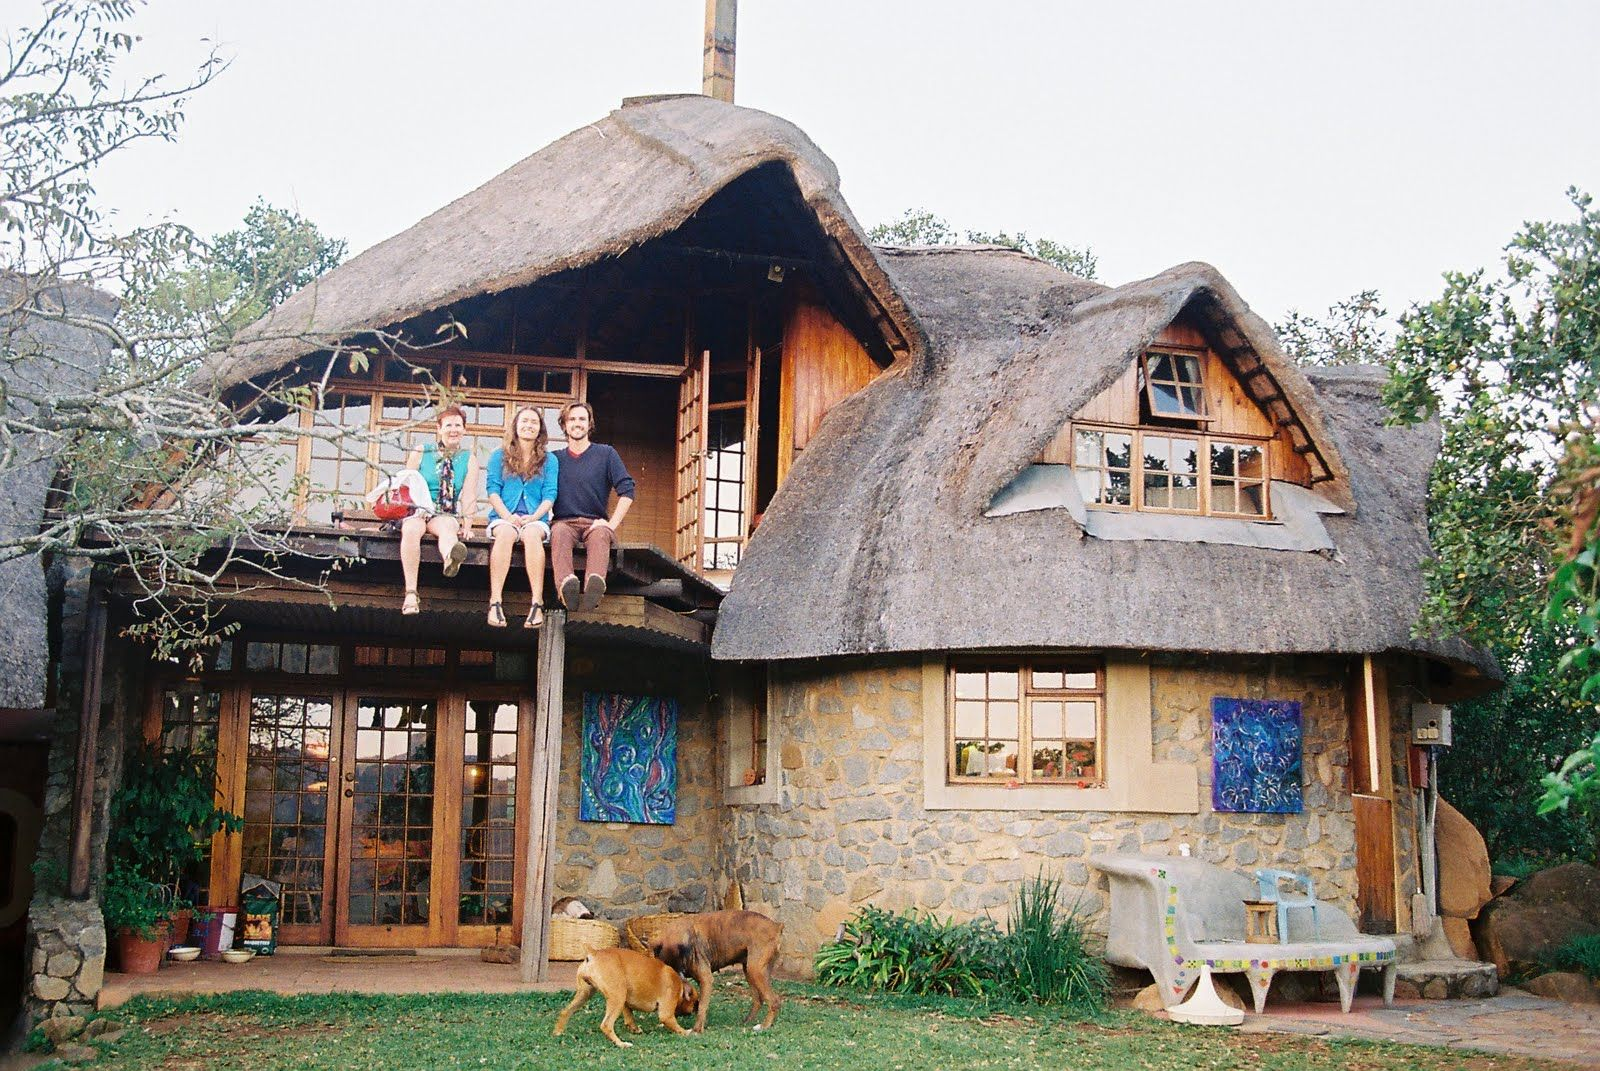 hippie houses google search my future home hippie house, househippie houses google search